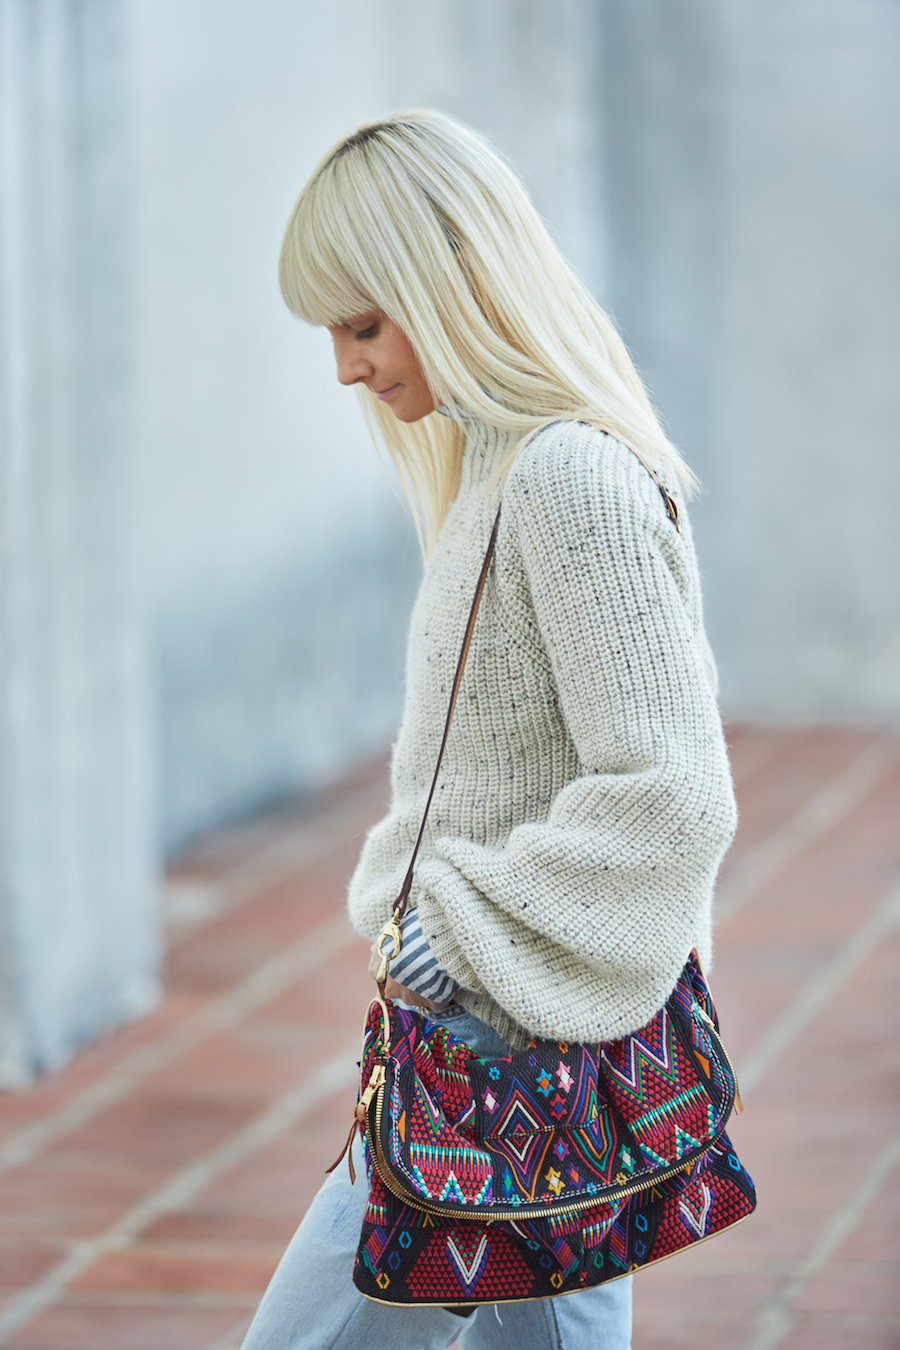 Casual sweater + upcycled colorful bag look // Week Of Ethical Outfits With Kestrel Jenkins